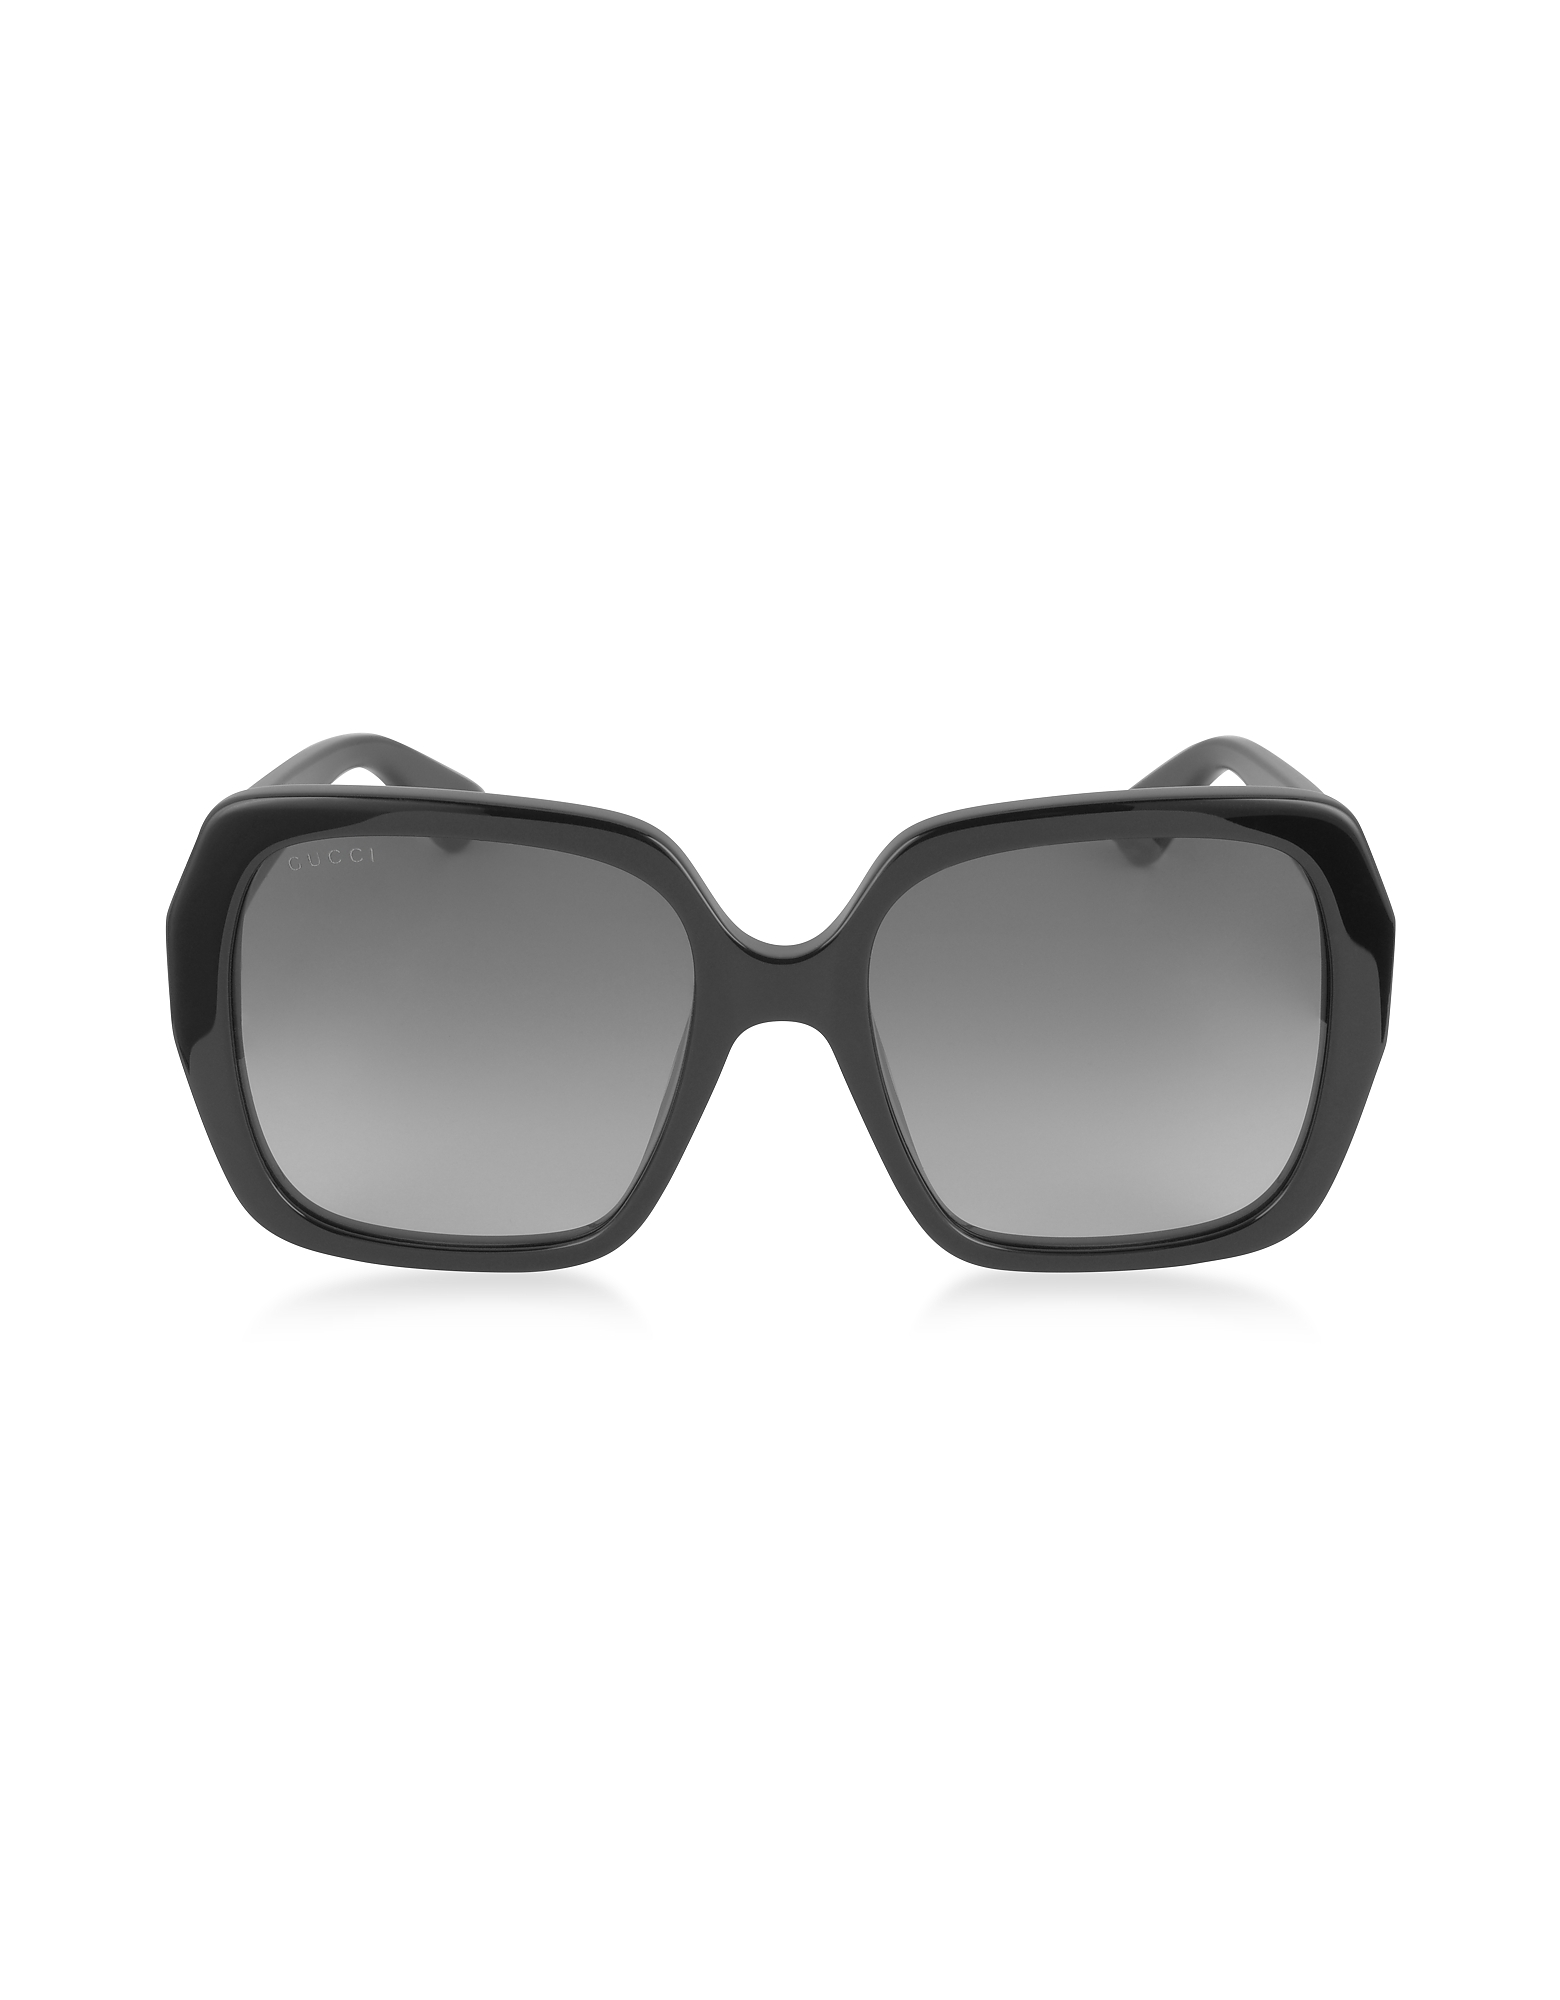 Gucci Sunglasses, GG0096S 001 Black Acetate Square Women's Sunglasses